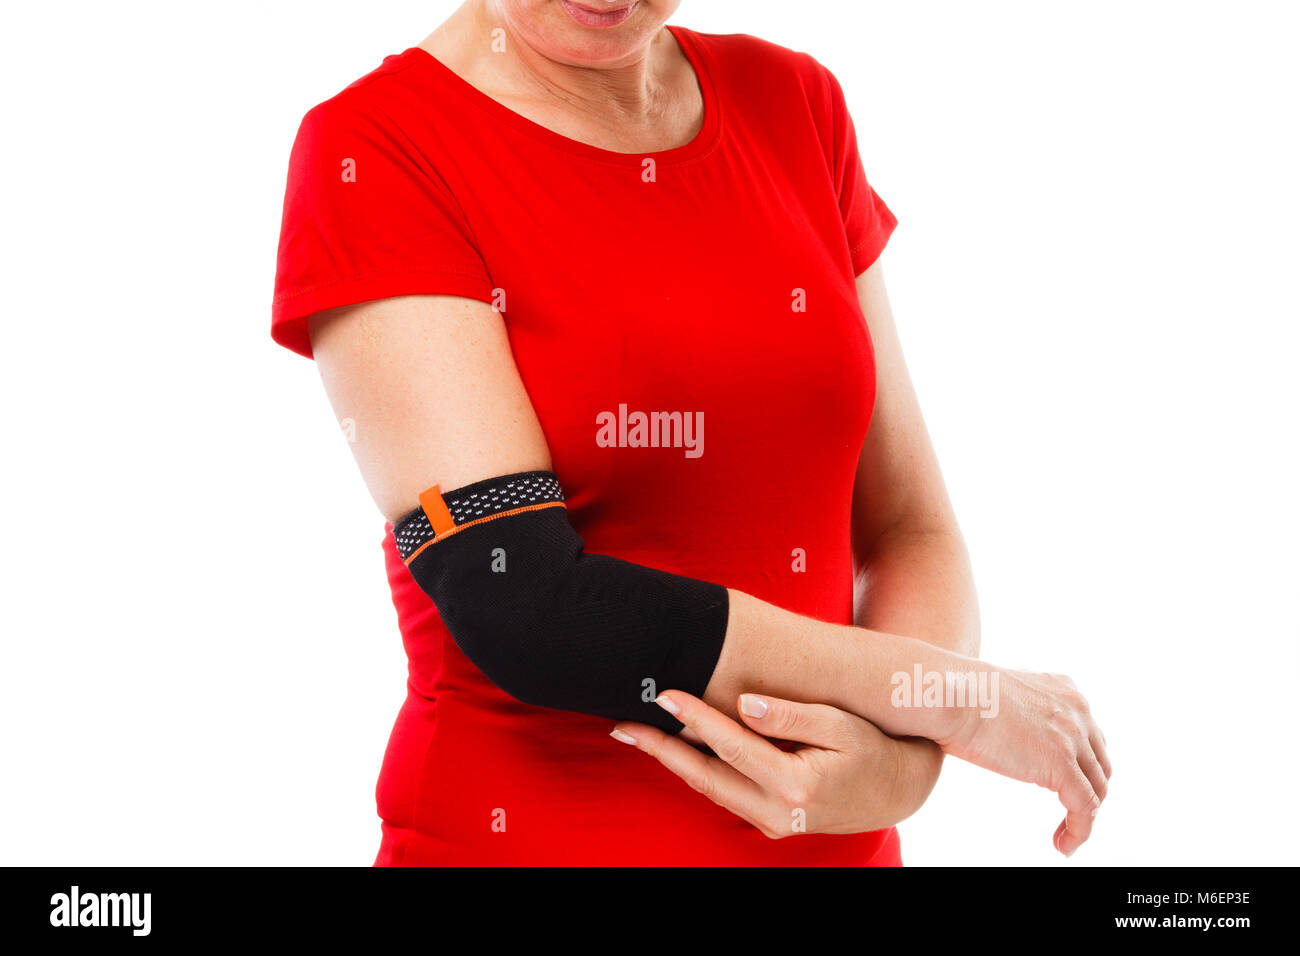 Tennis elbow - woman holding painful elbow isolated on white background - Stock Image